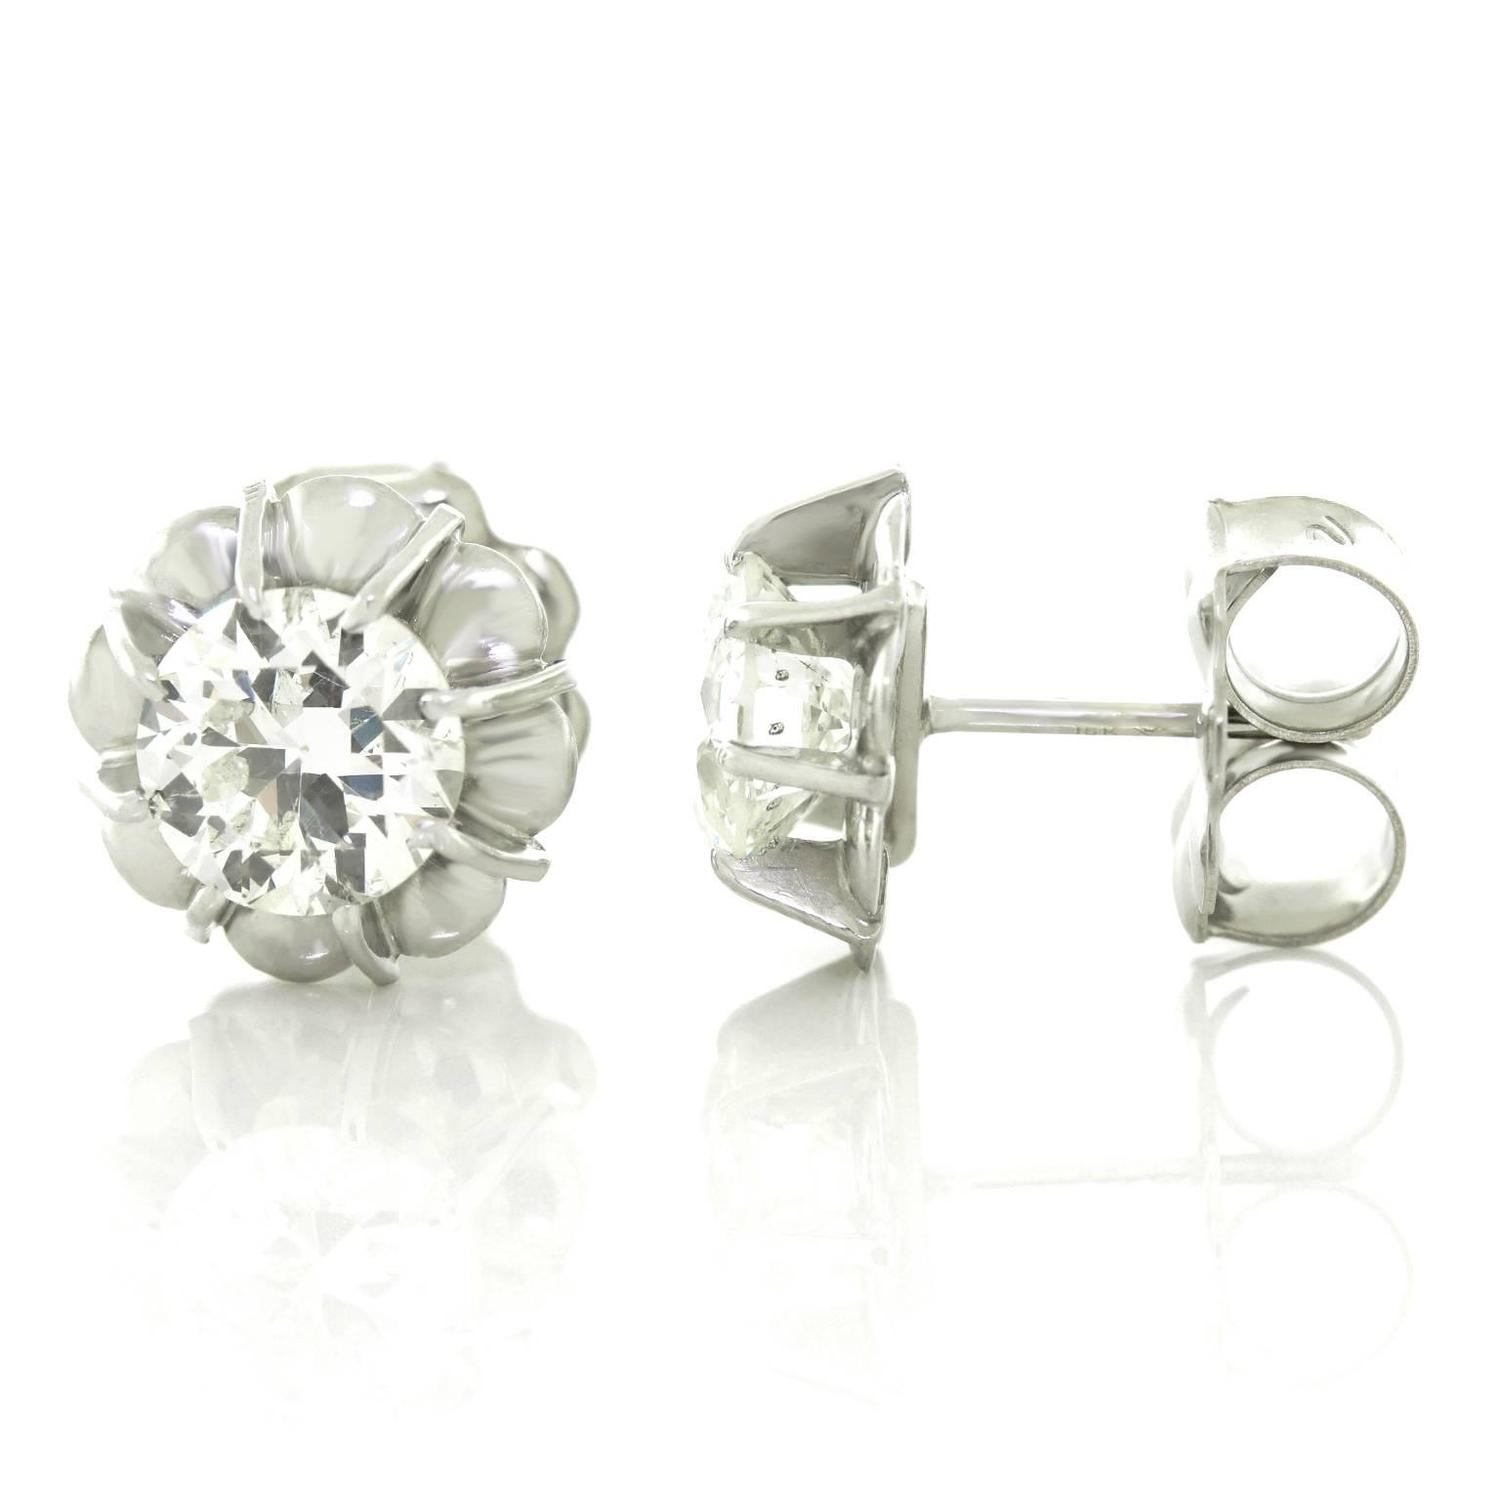 deco platinum gold stud earrings for sale at 1stdibs